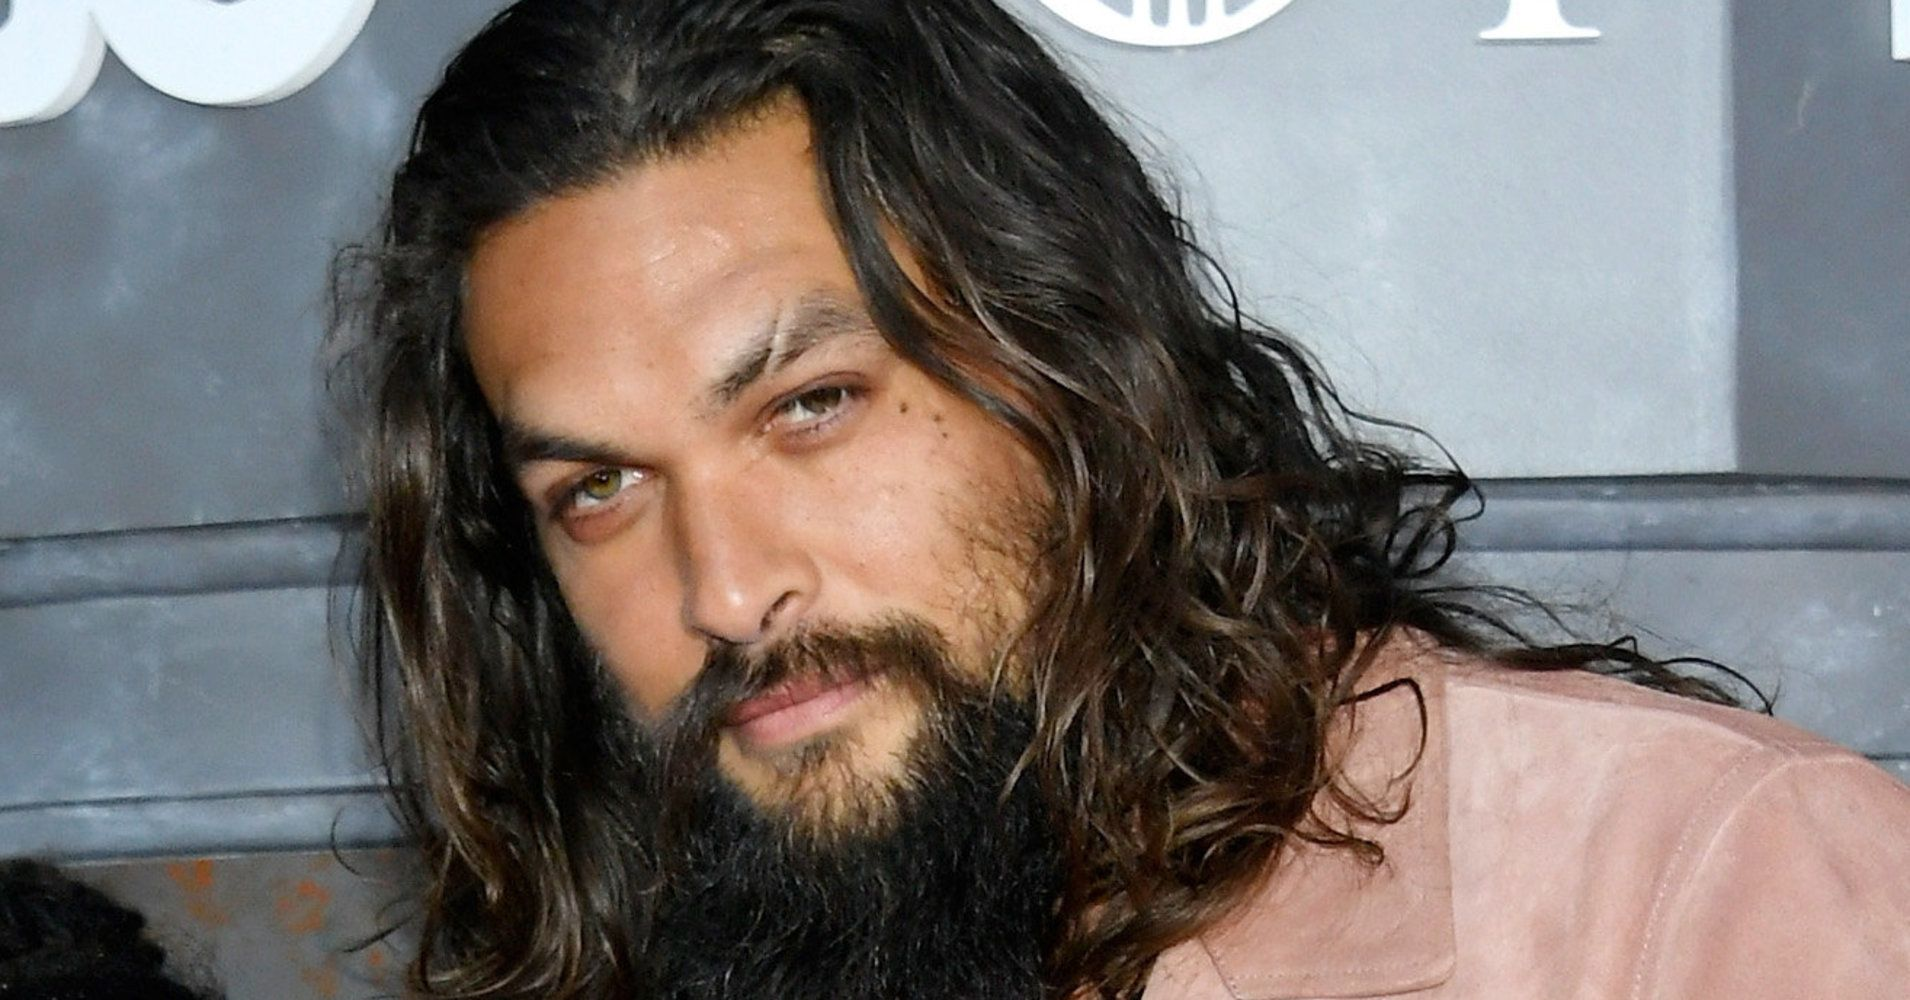 Jason Momoa Shaves Off 'Beast' Beard To Bring Awareness To Plastics